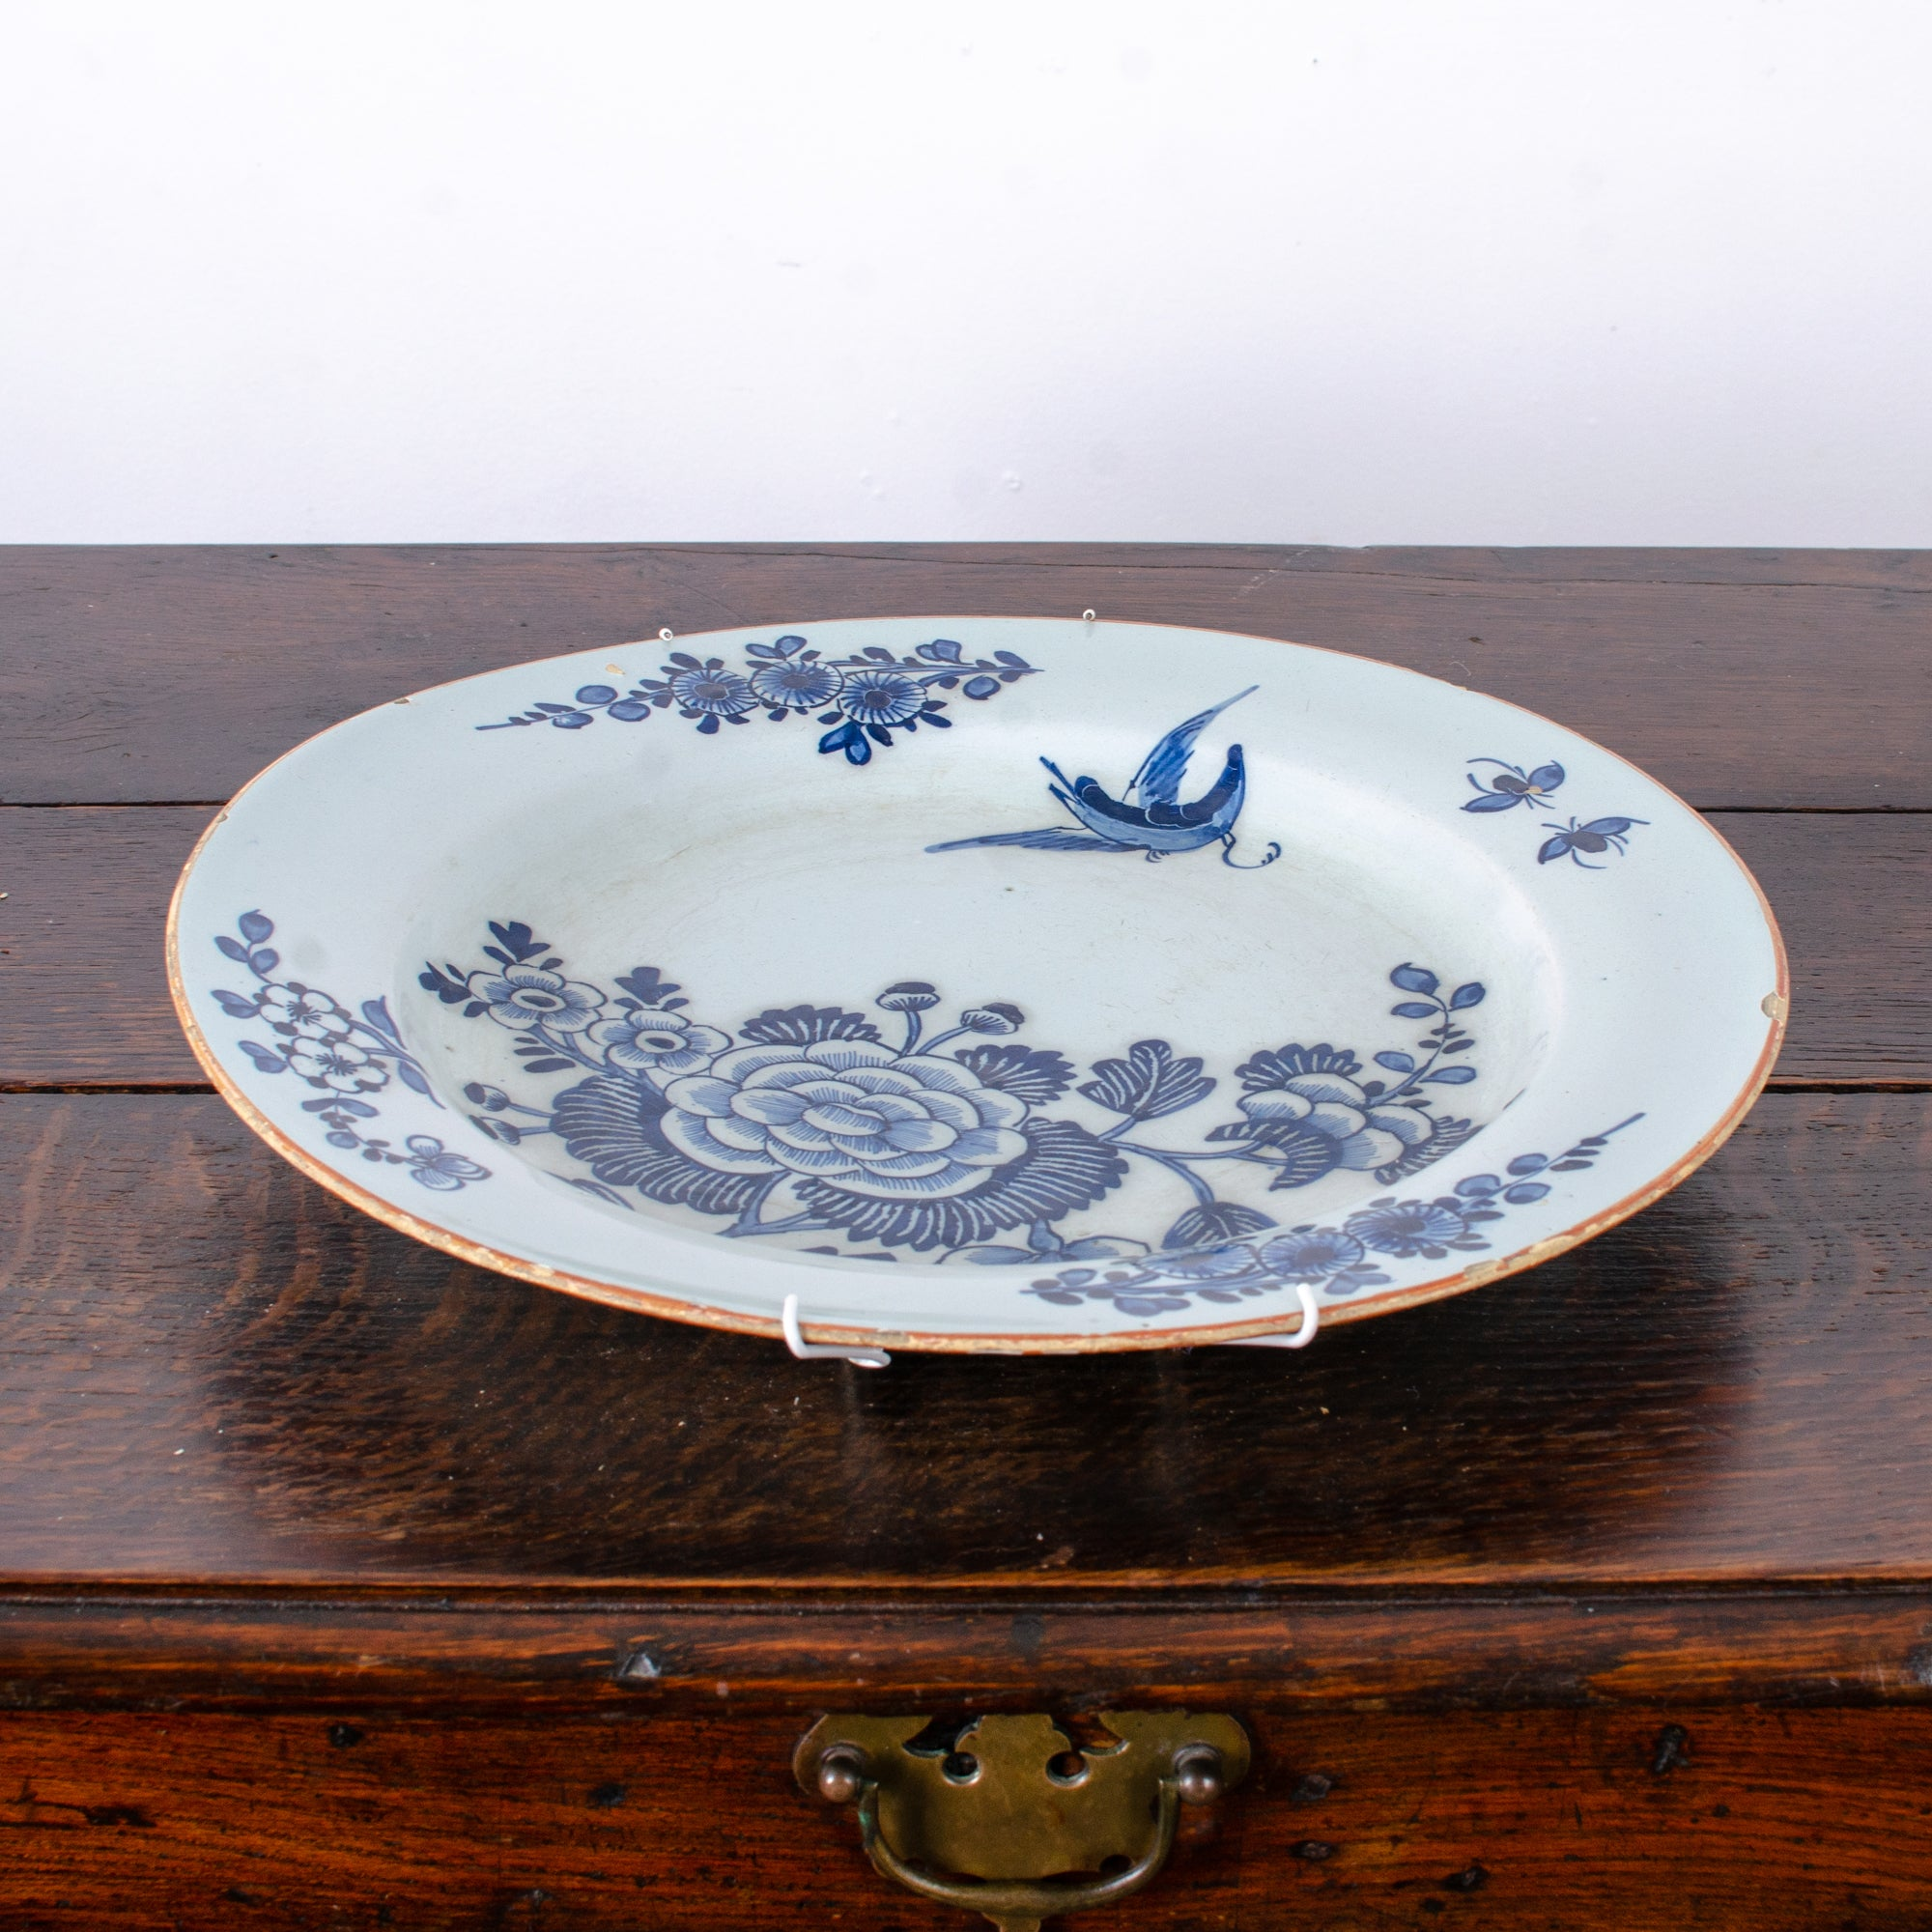 English Delft Charger, 18th Century